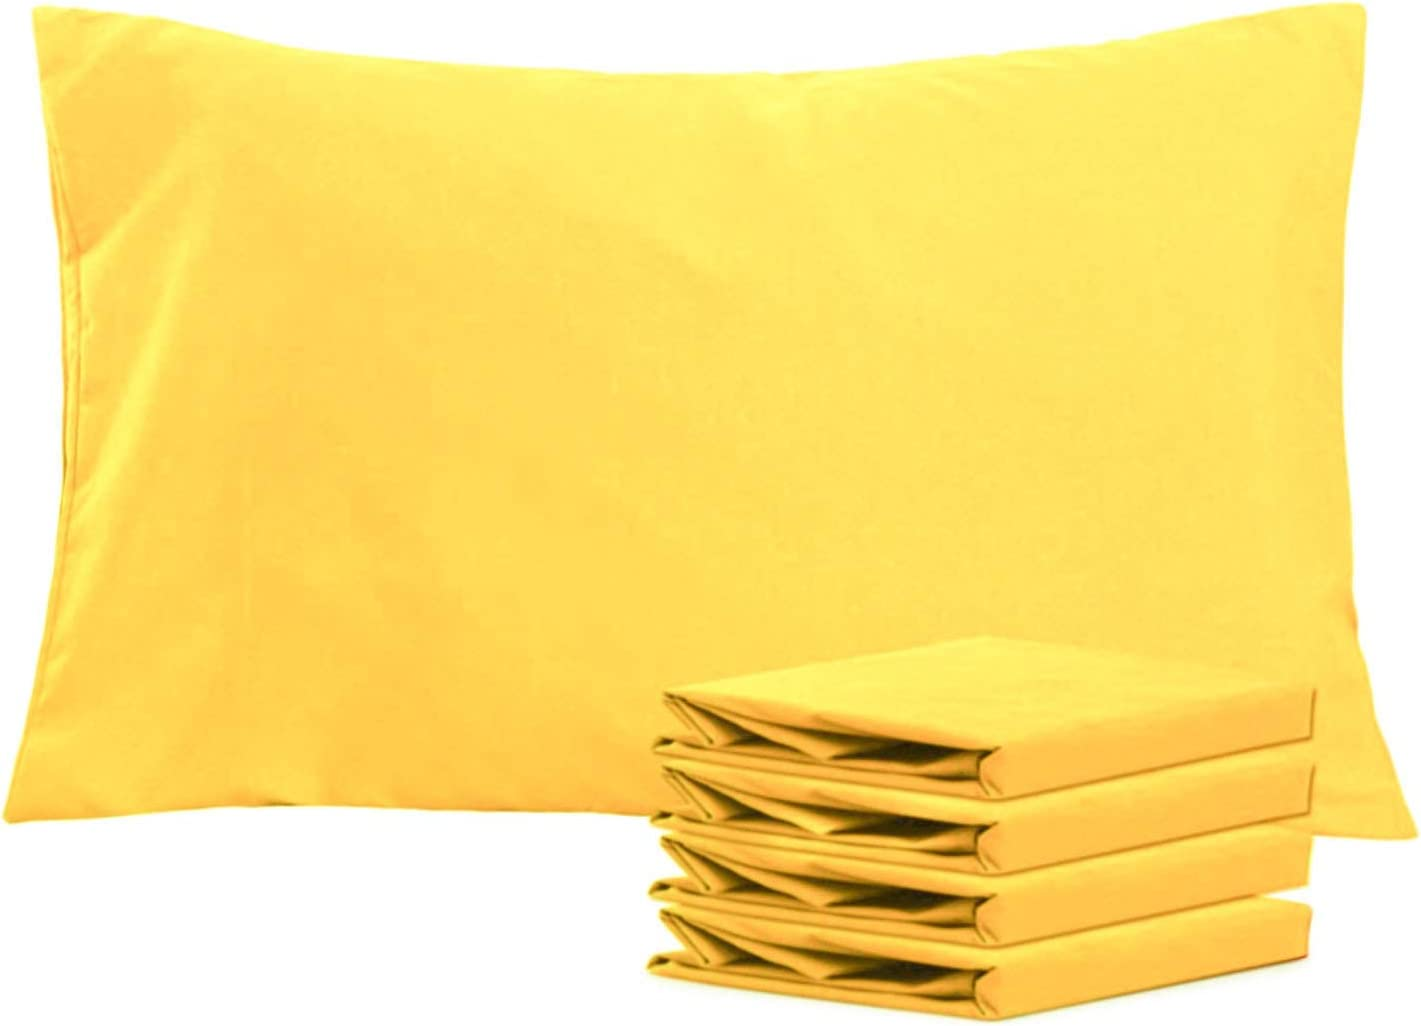 NTBAY Queen Pillowcases Set of 4, 100% Brushed Microfiber, Soft and Cozy, Wrinkle, Fade, Stain Resistant, Queen, Yellow